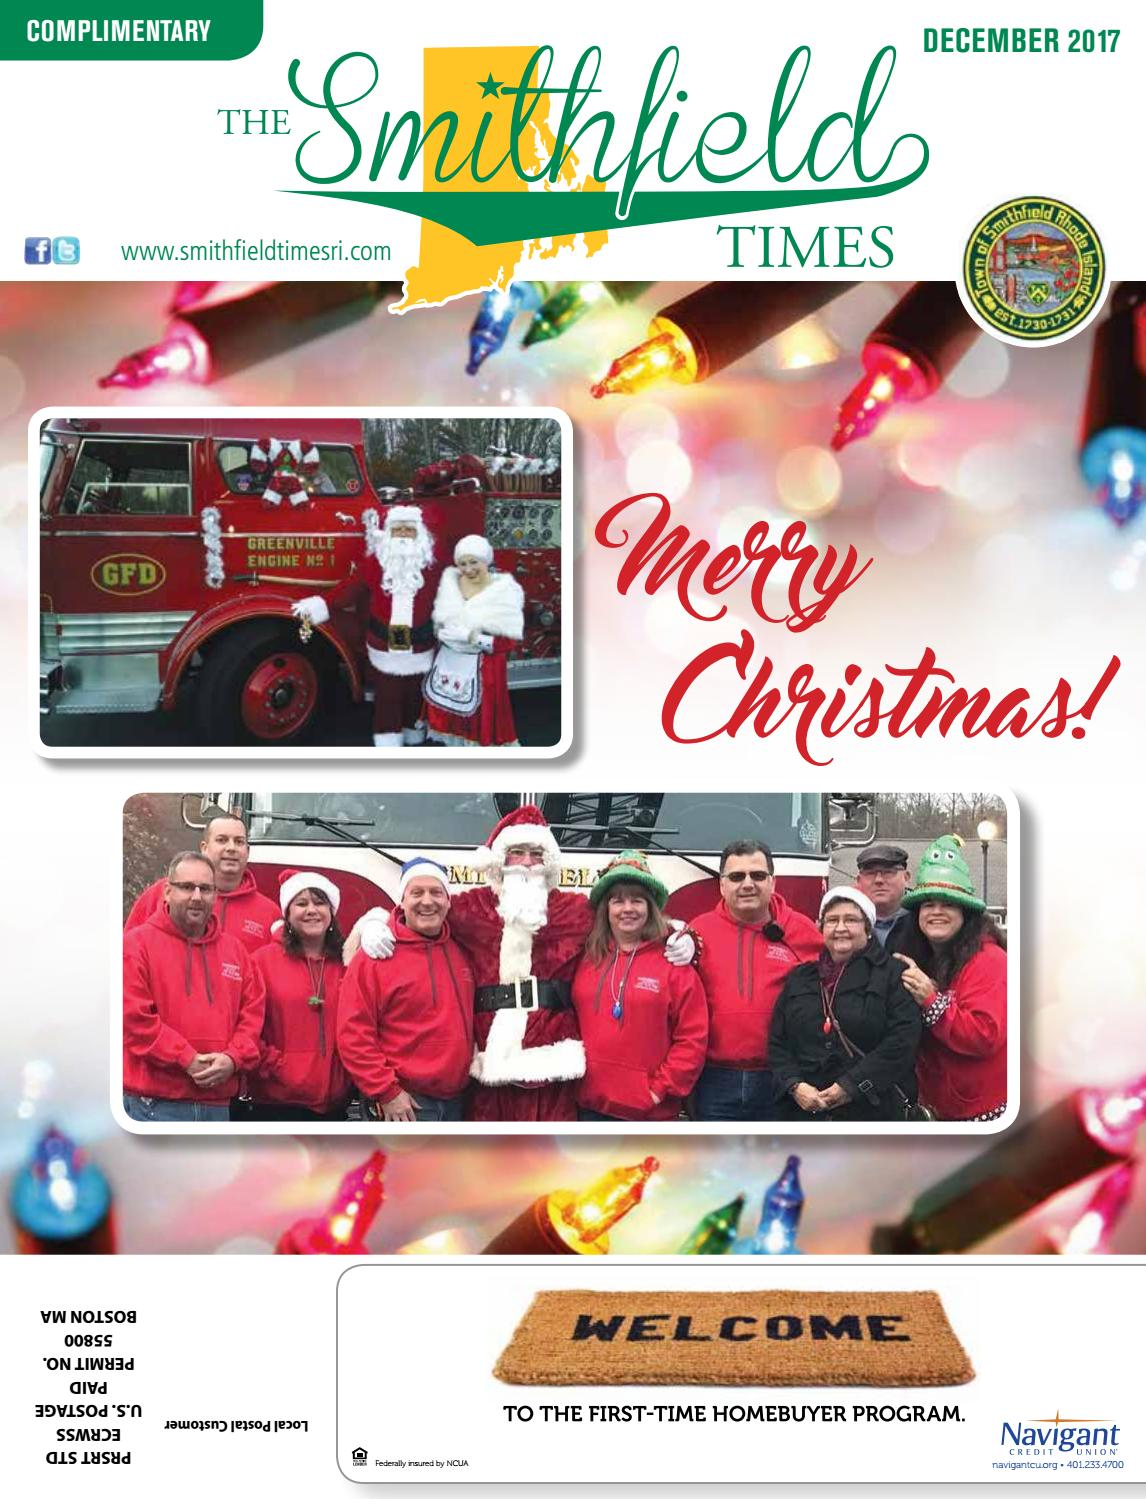 The Smithfield Times December 2017 by ricommongroundnews - issuu